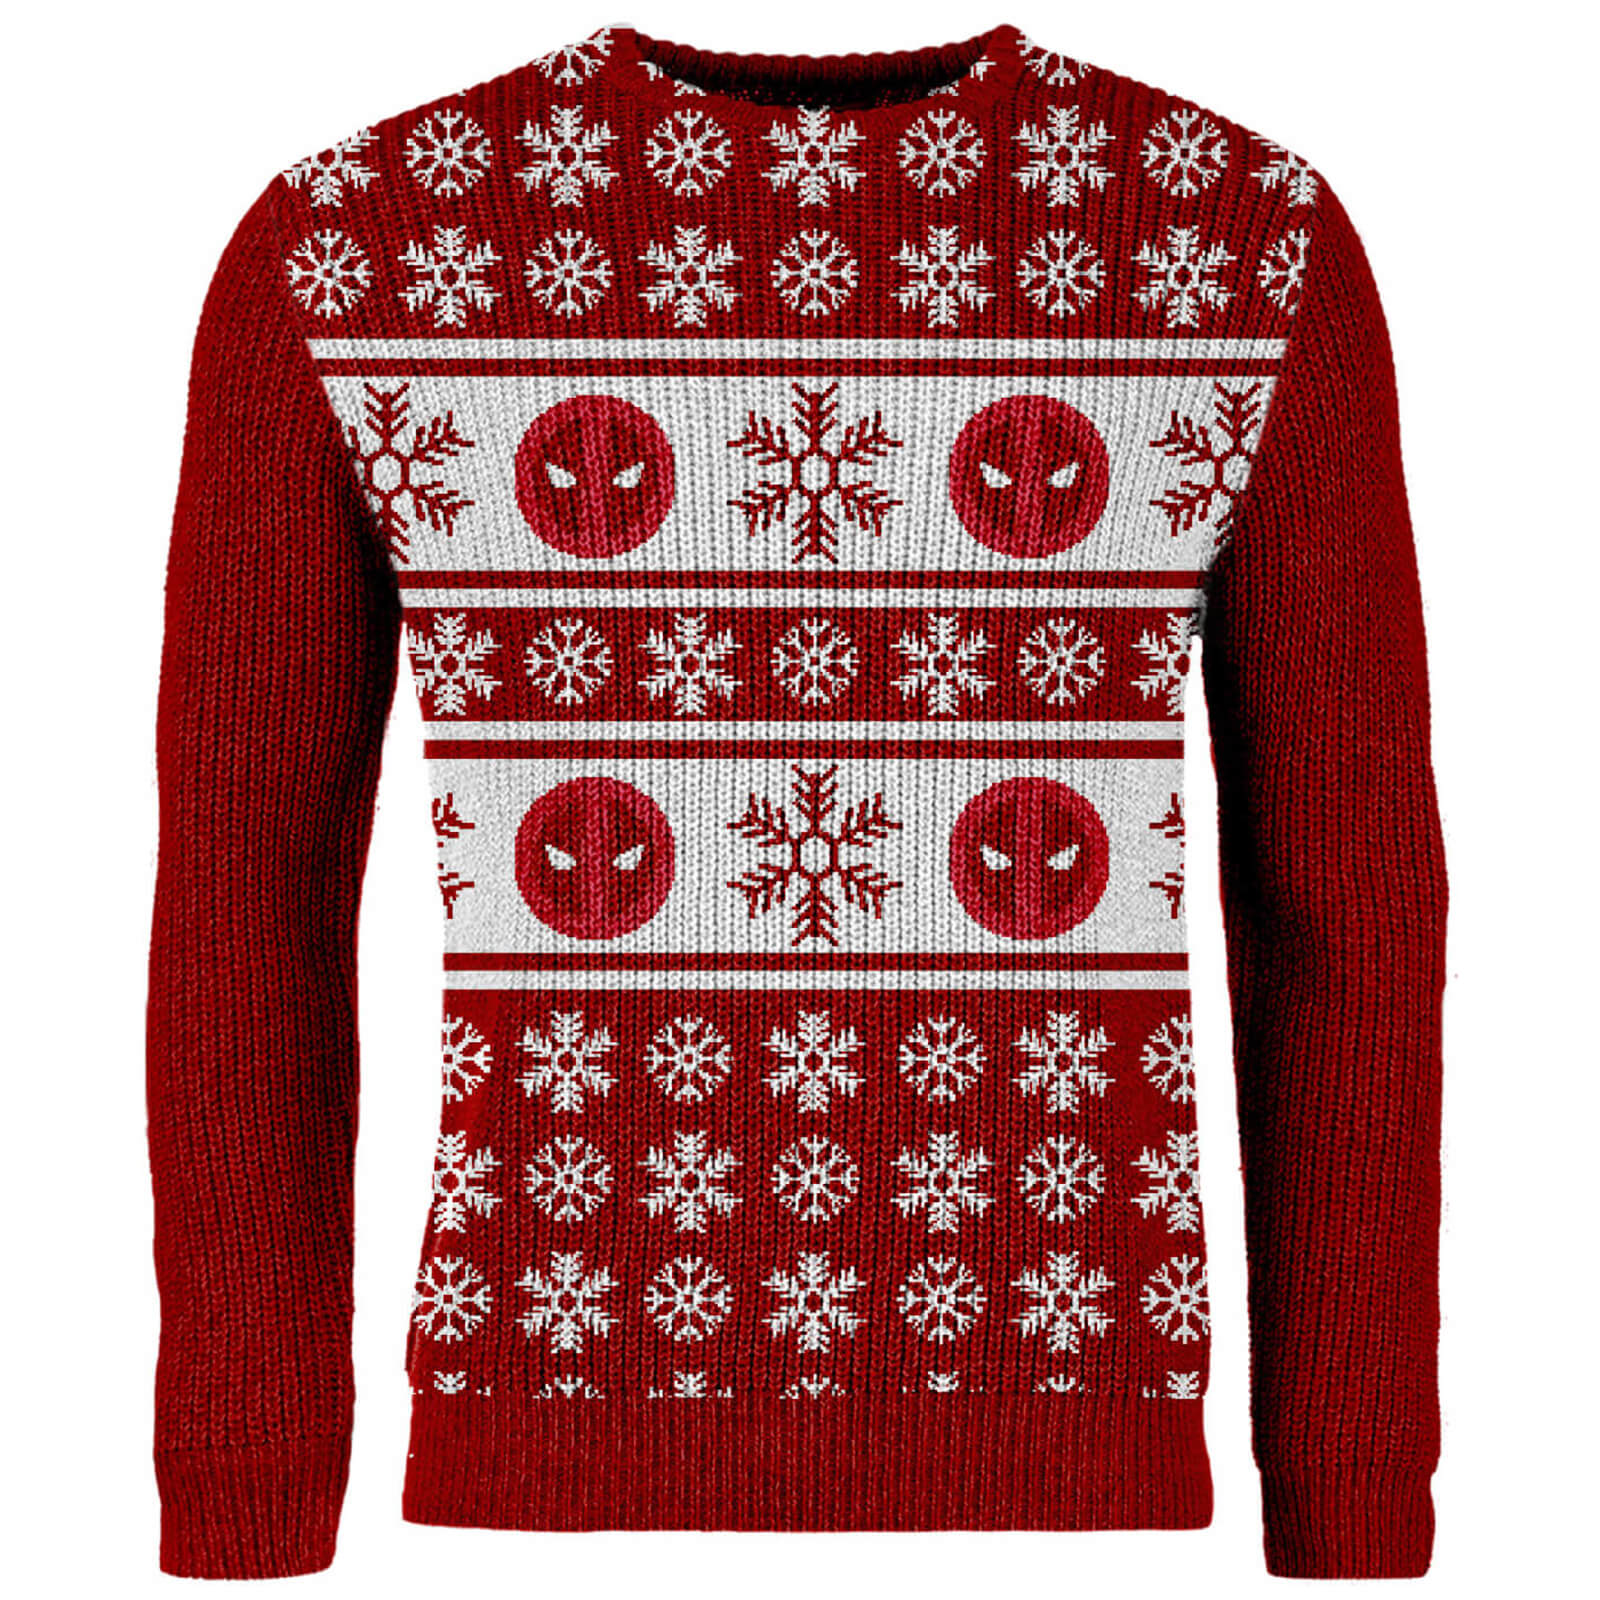 Lord Of The Rings Christmas Jumper.Zavvi Exclusive Deadpool Knitted Christmas Jumper Red